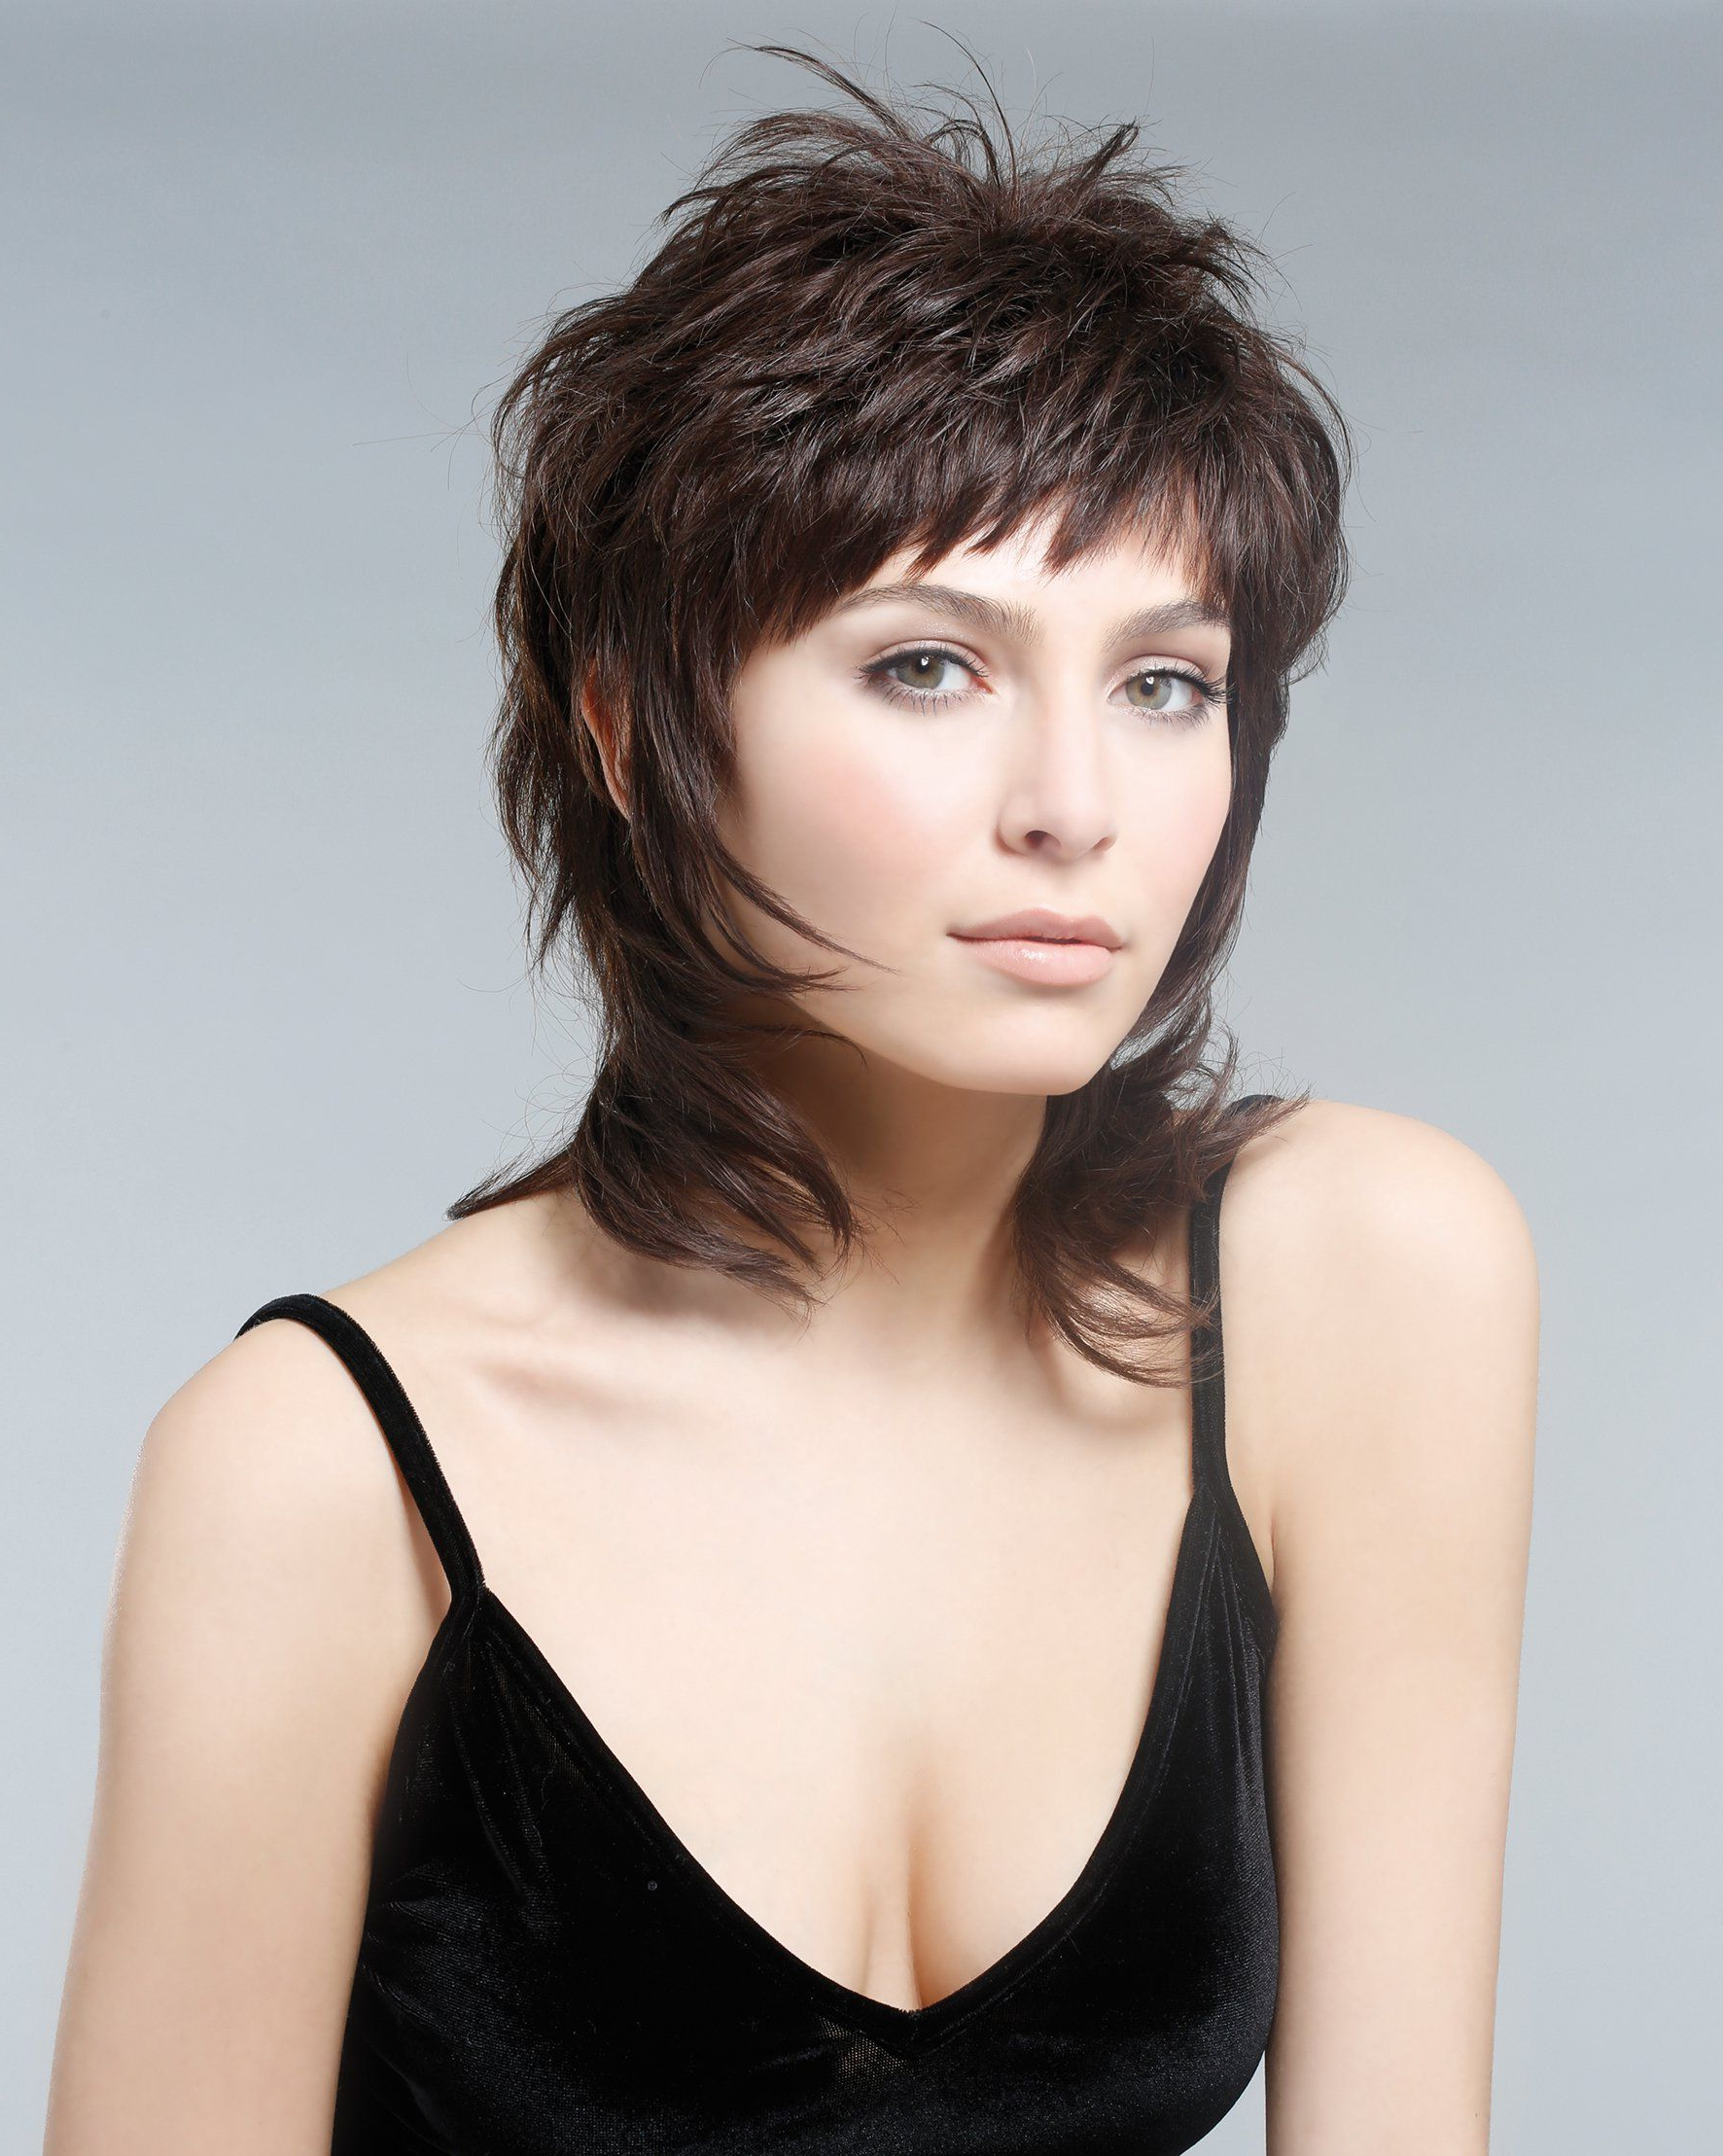 Well Known Parisian Shag Haircuts For Thin Hair With Pin On Hair Styles (Gallery 17 of 20)